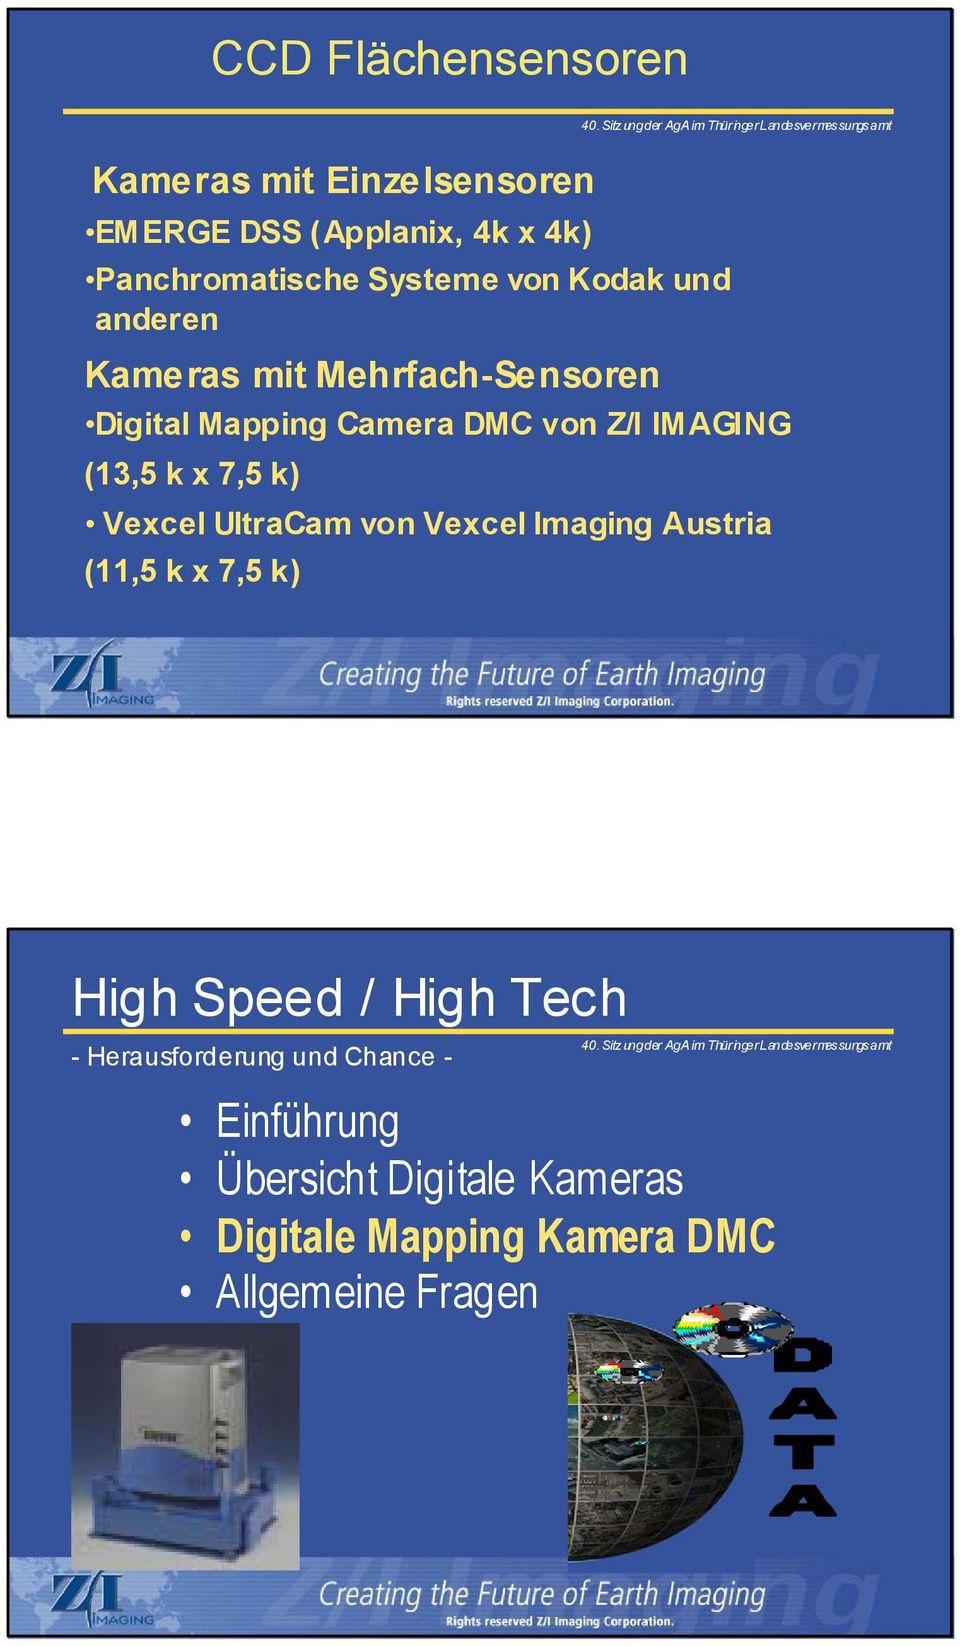 x 7,5 k) Vexcel UltraCam von Vexcel Imaging Austria (11,5 k x 7,5 k) High Speed / High Tech -